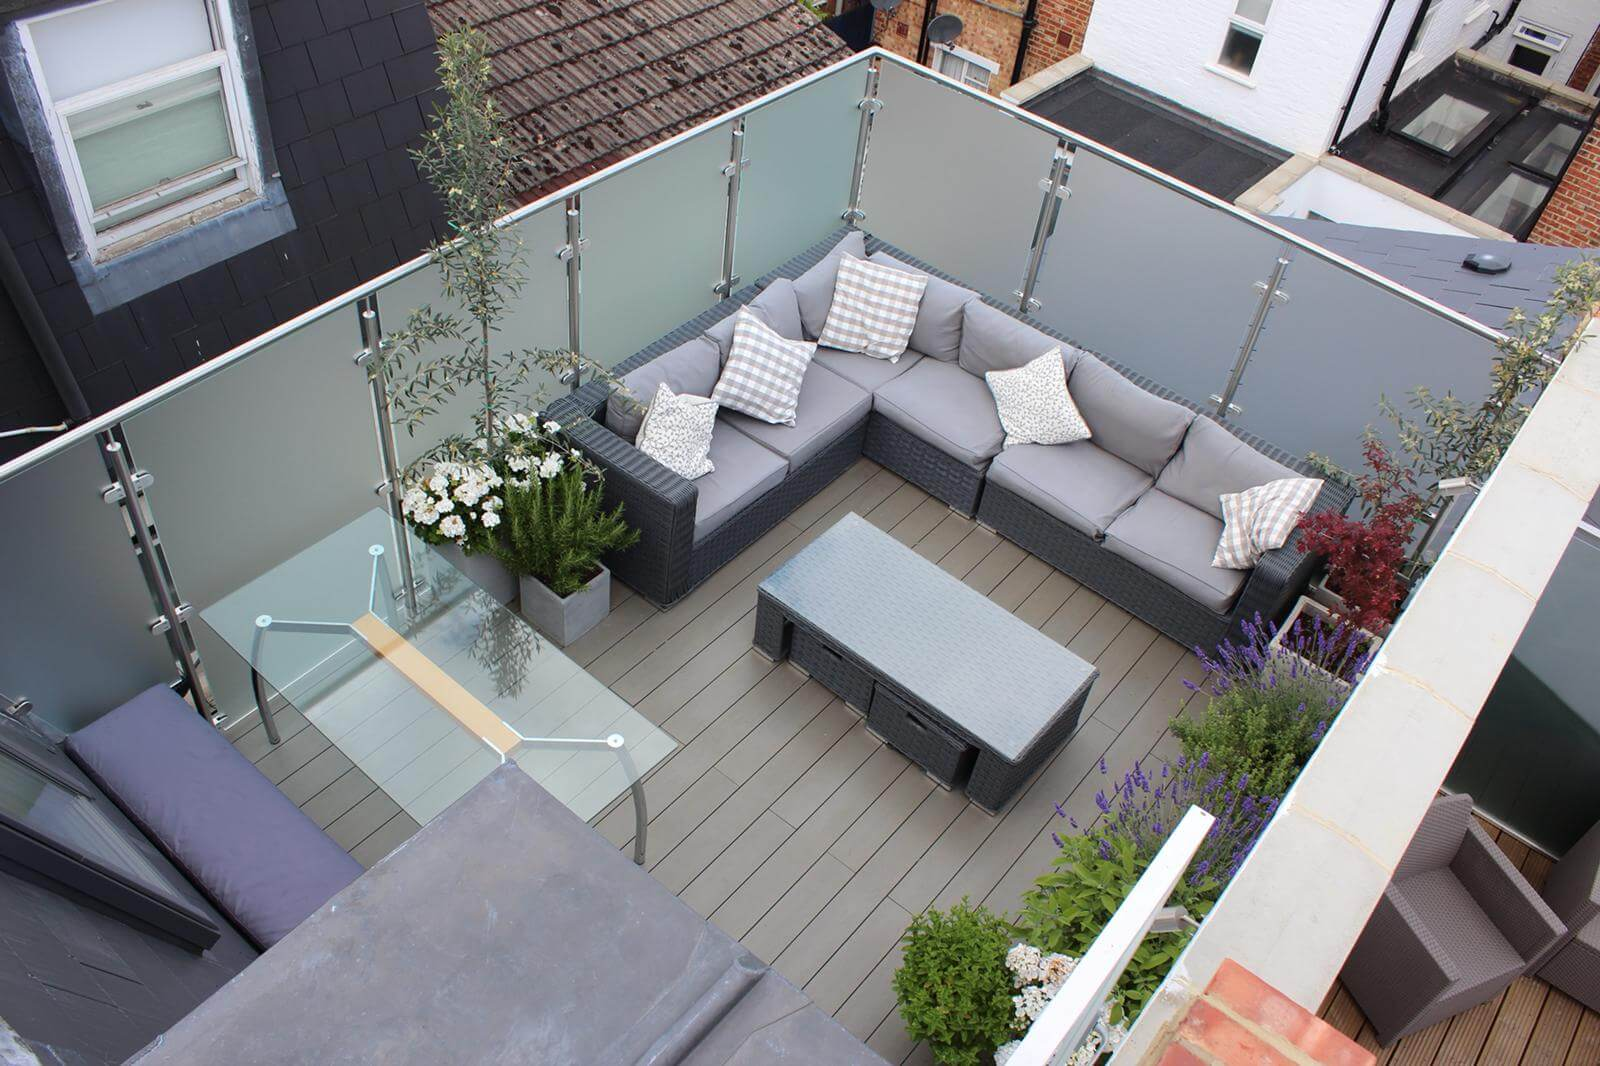 iDecking – The Perfect Deck Solution?